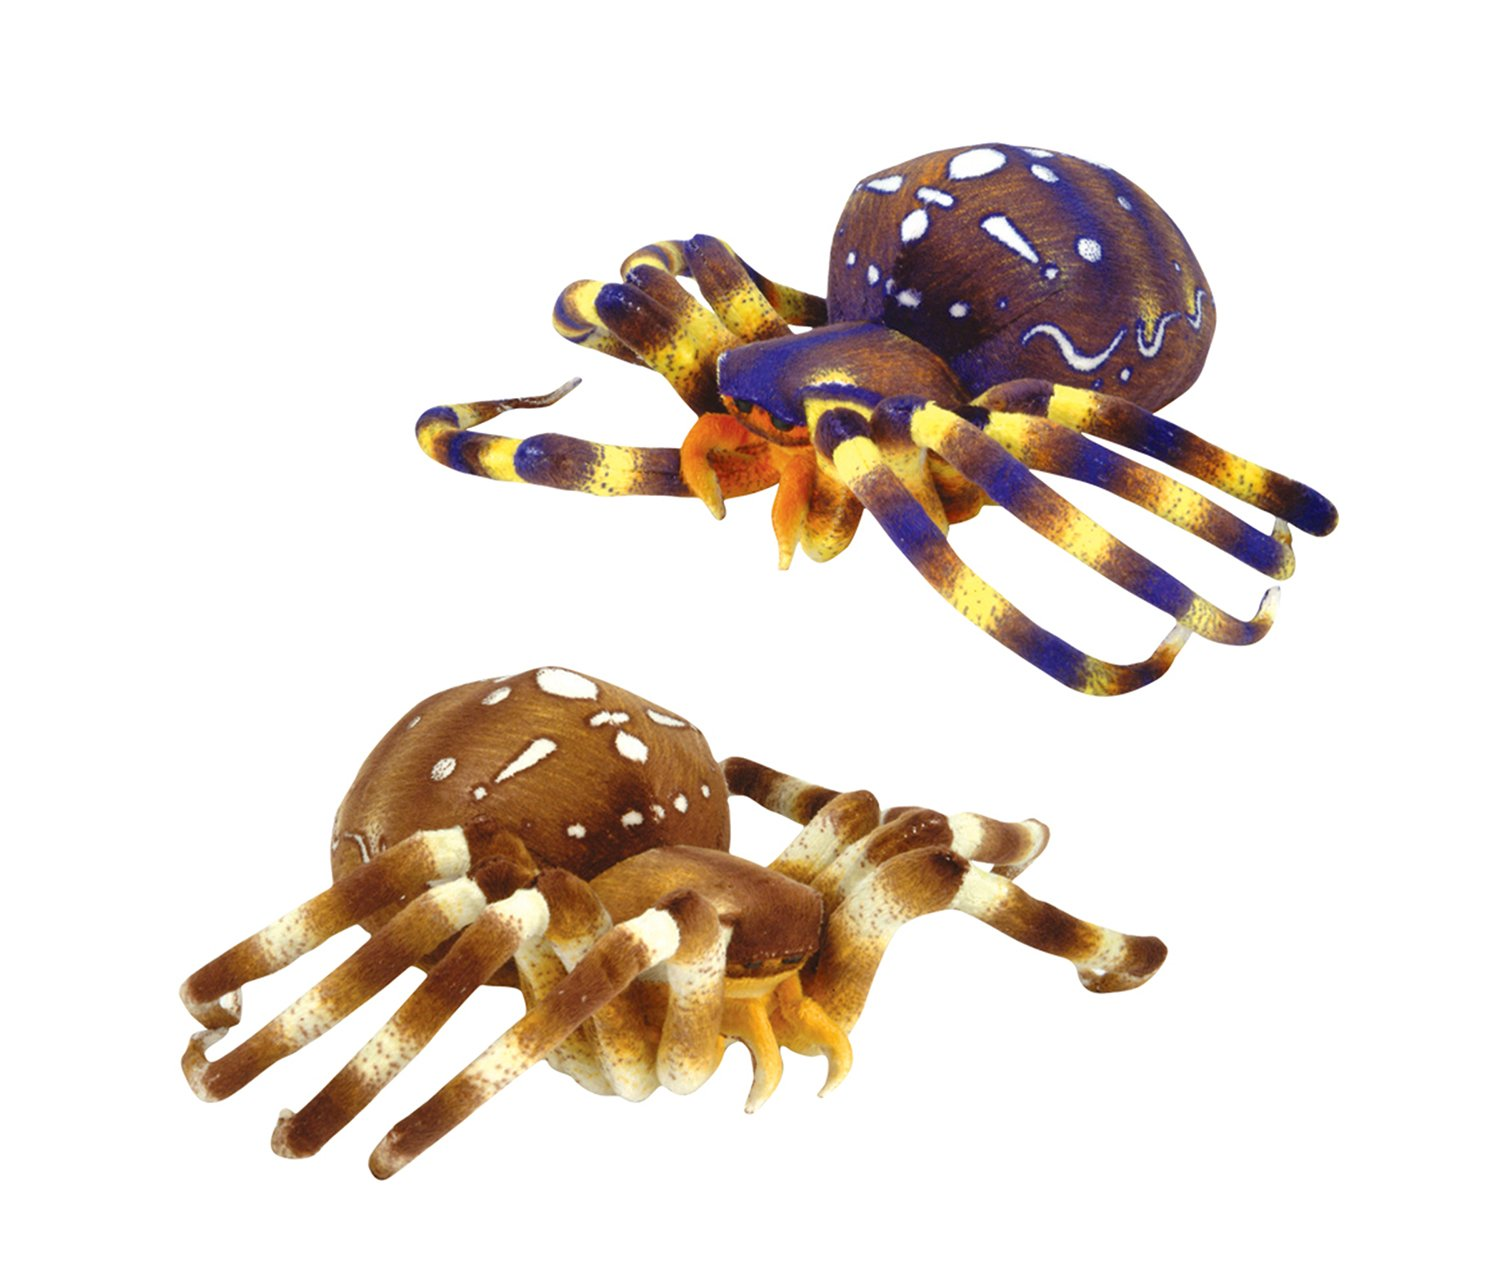 8 inch Adventure Planet Plush SPIDERS Set of 2 different - Blue /& Brown